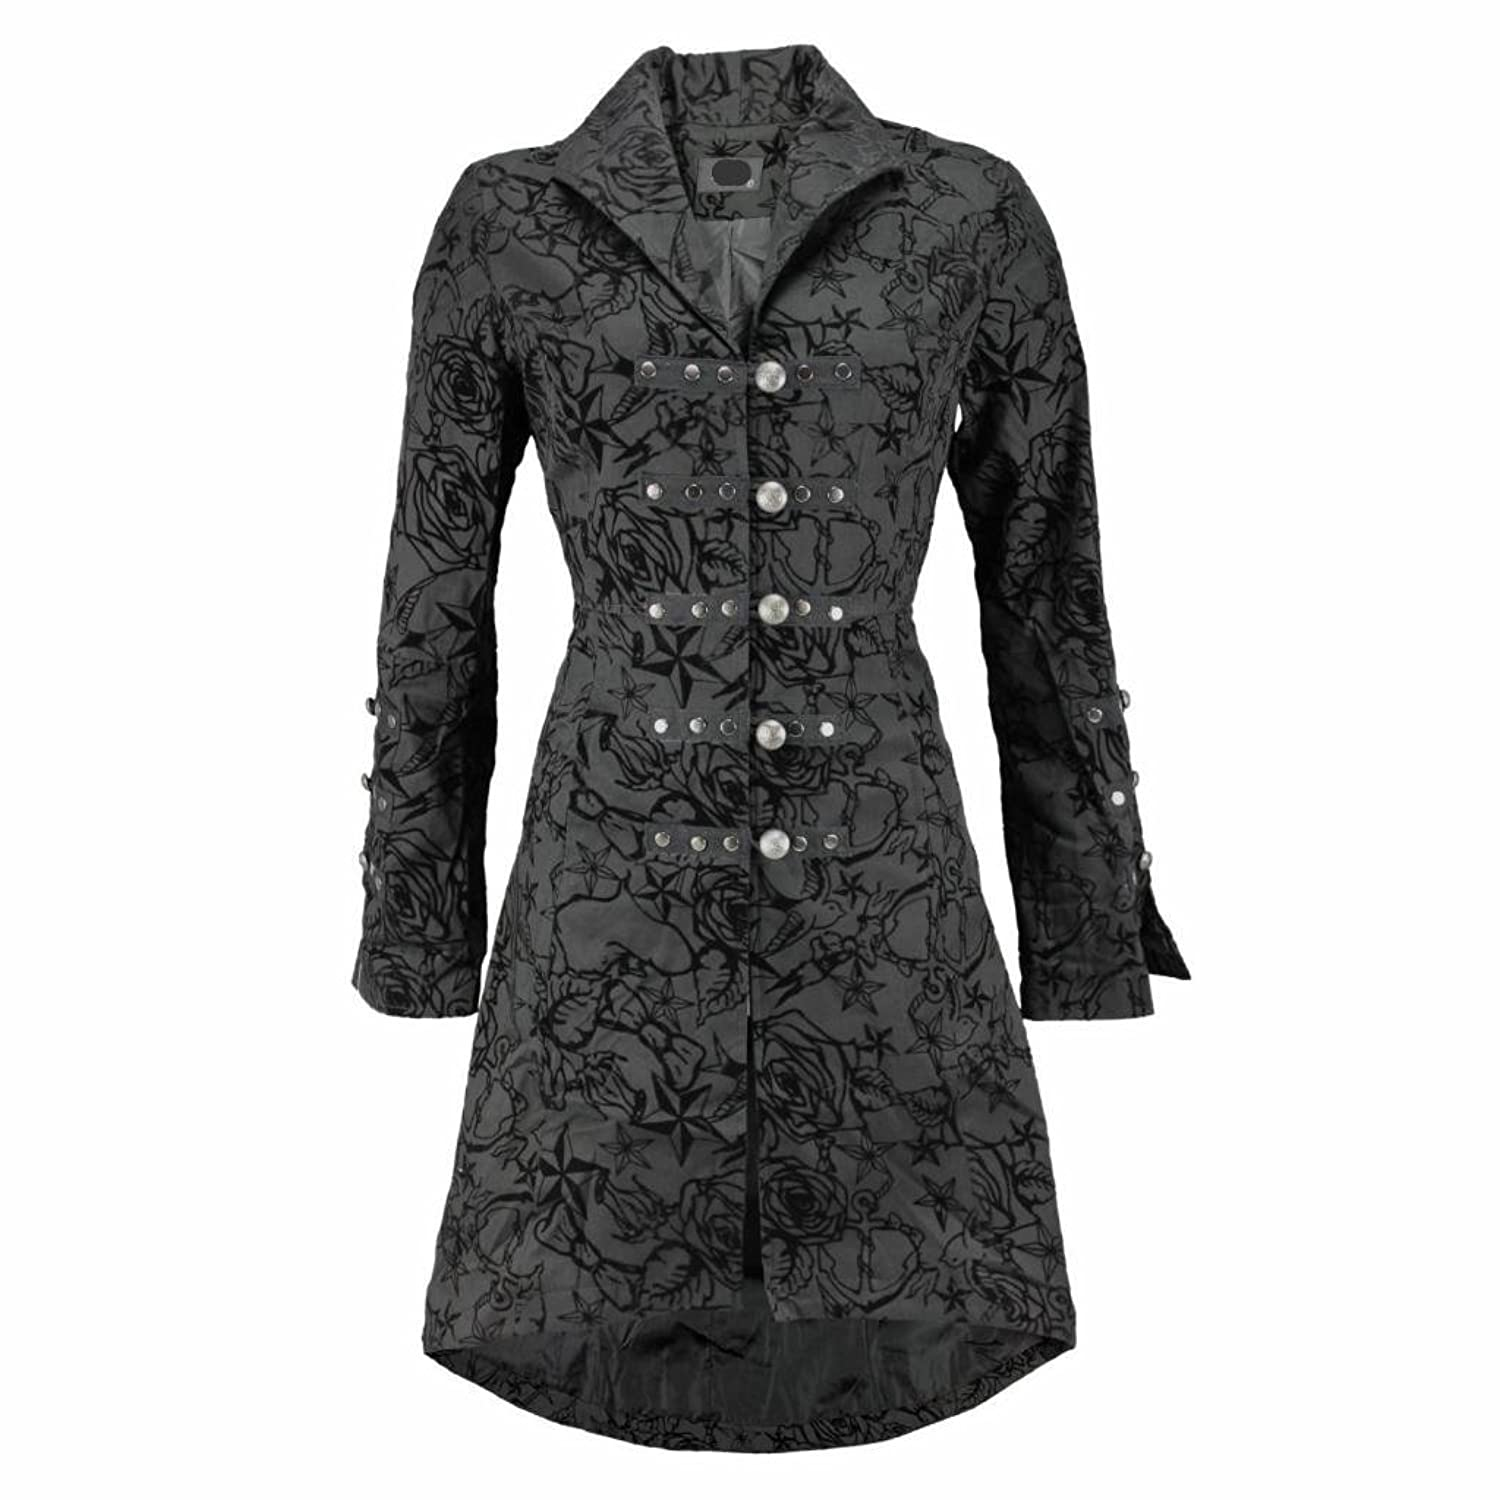 Steampunk Jackets Pretty Kitty Fashion Black Vintage Tattoo Flock Fabric Long Coat - NOW AVAILABLE UP TO SIZE UK 26 £57.99 AT vintagedancer.com